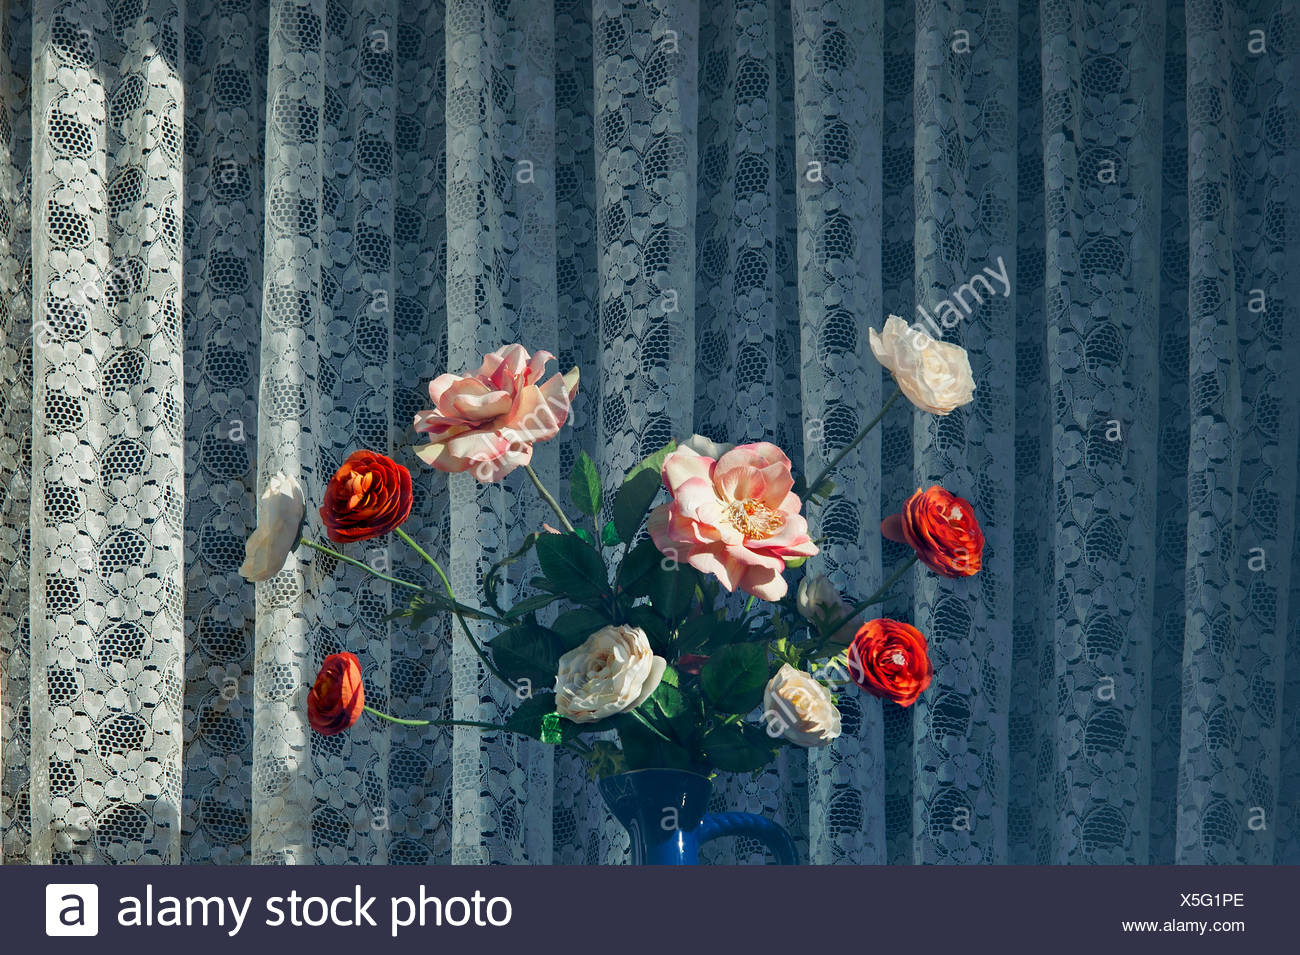 Artificial roses in front of a curtain, Bavaria, Germany - Stock Image